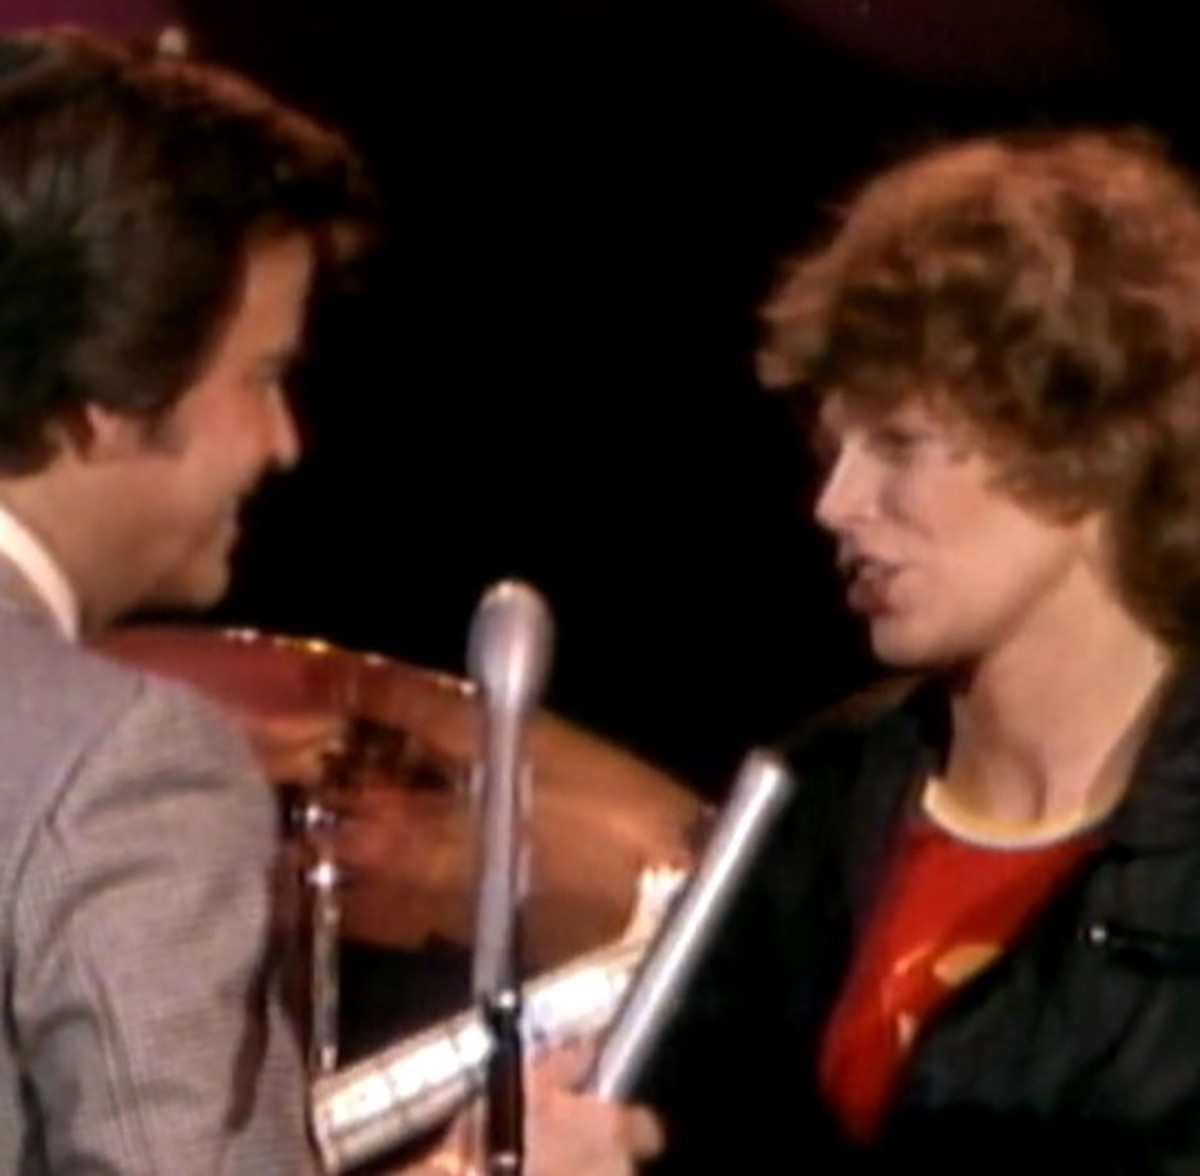 American Bandstand interview 1979, Dick Clark Productions